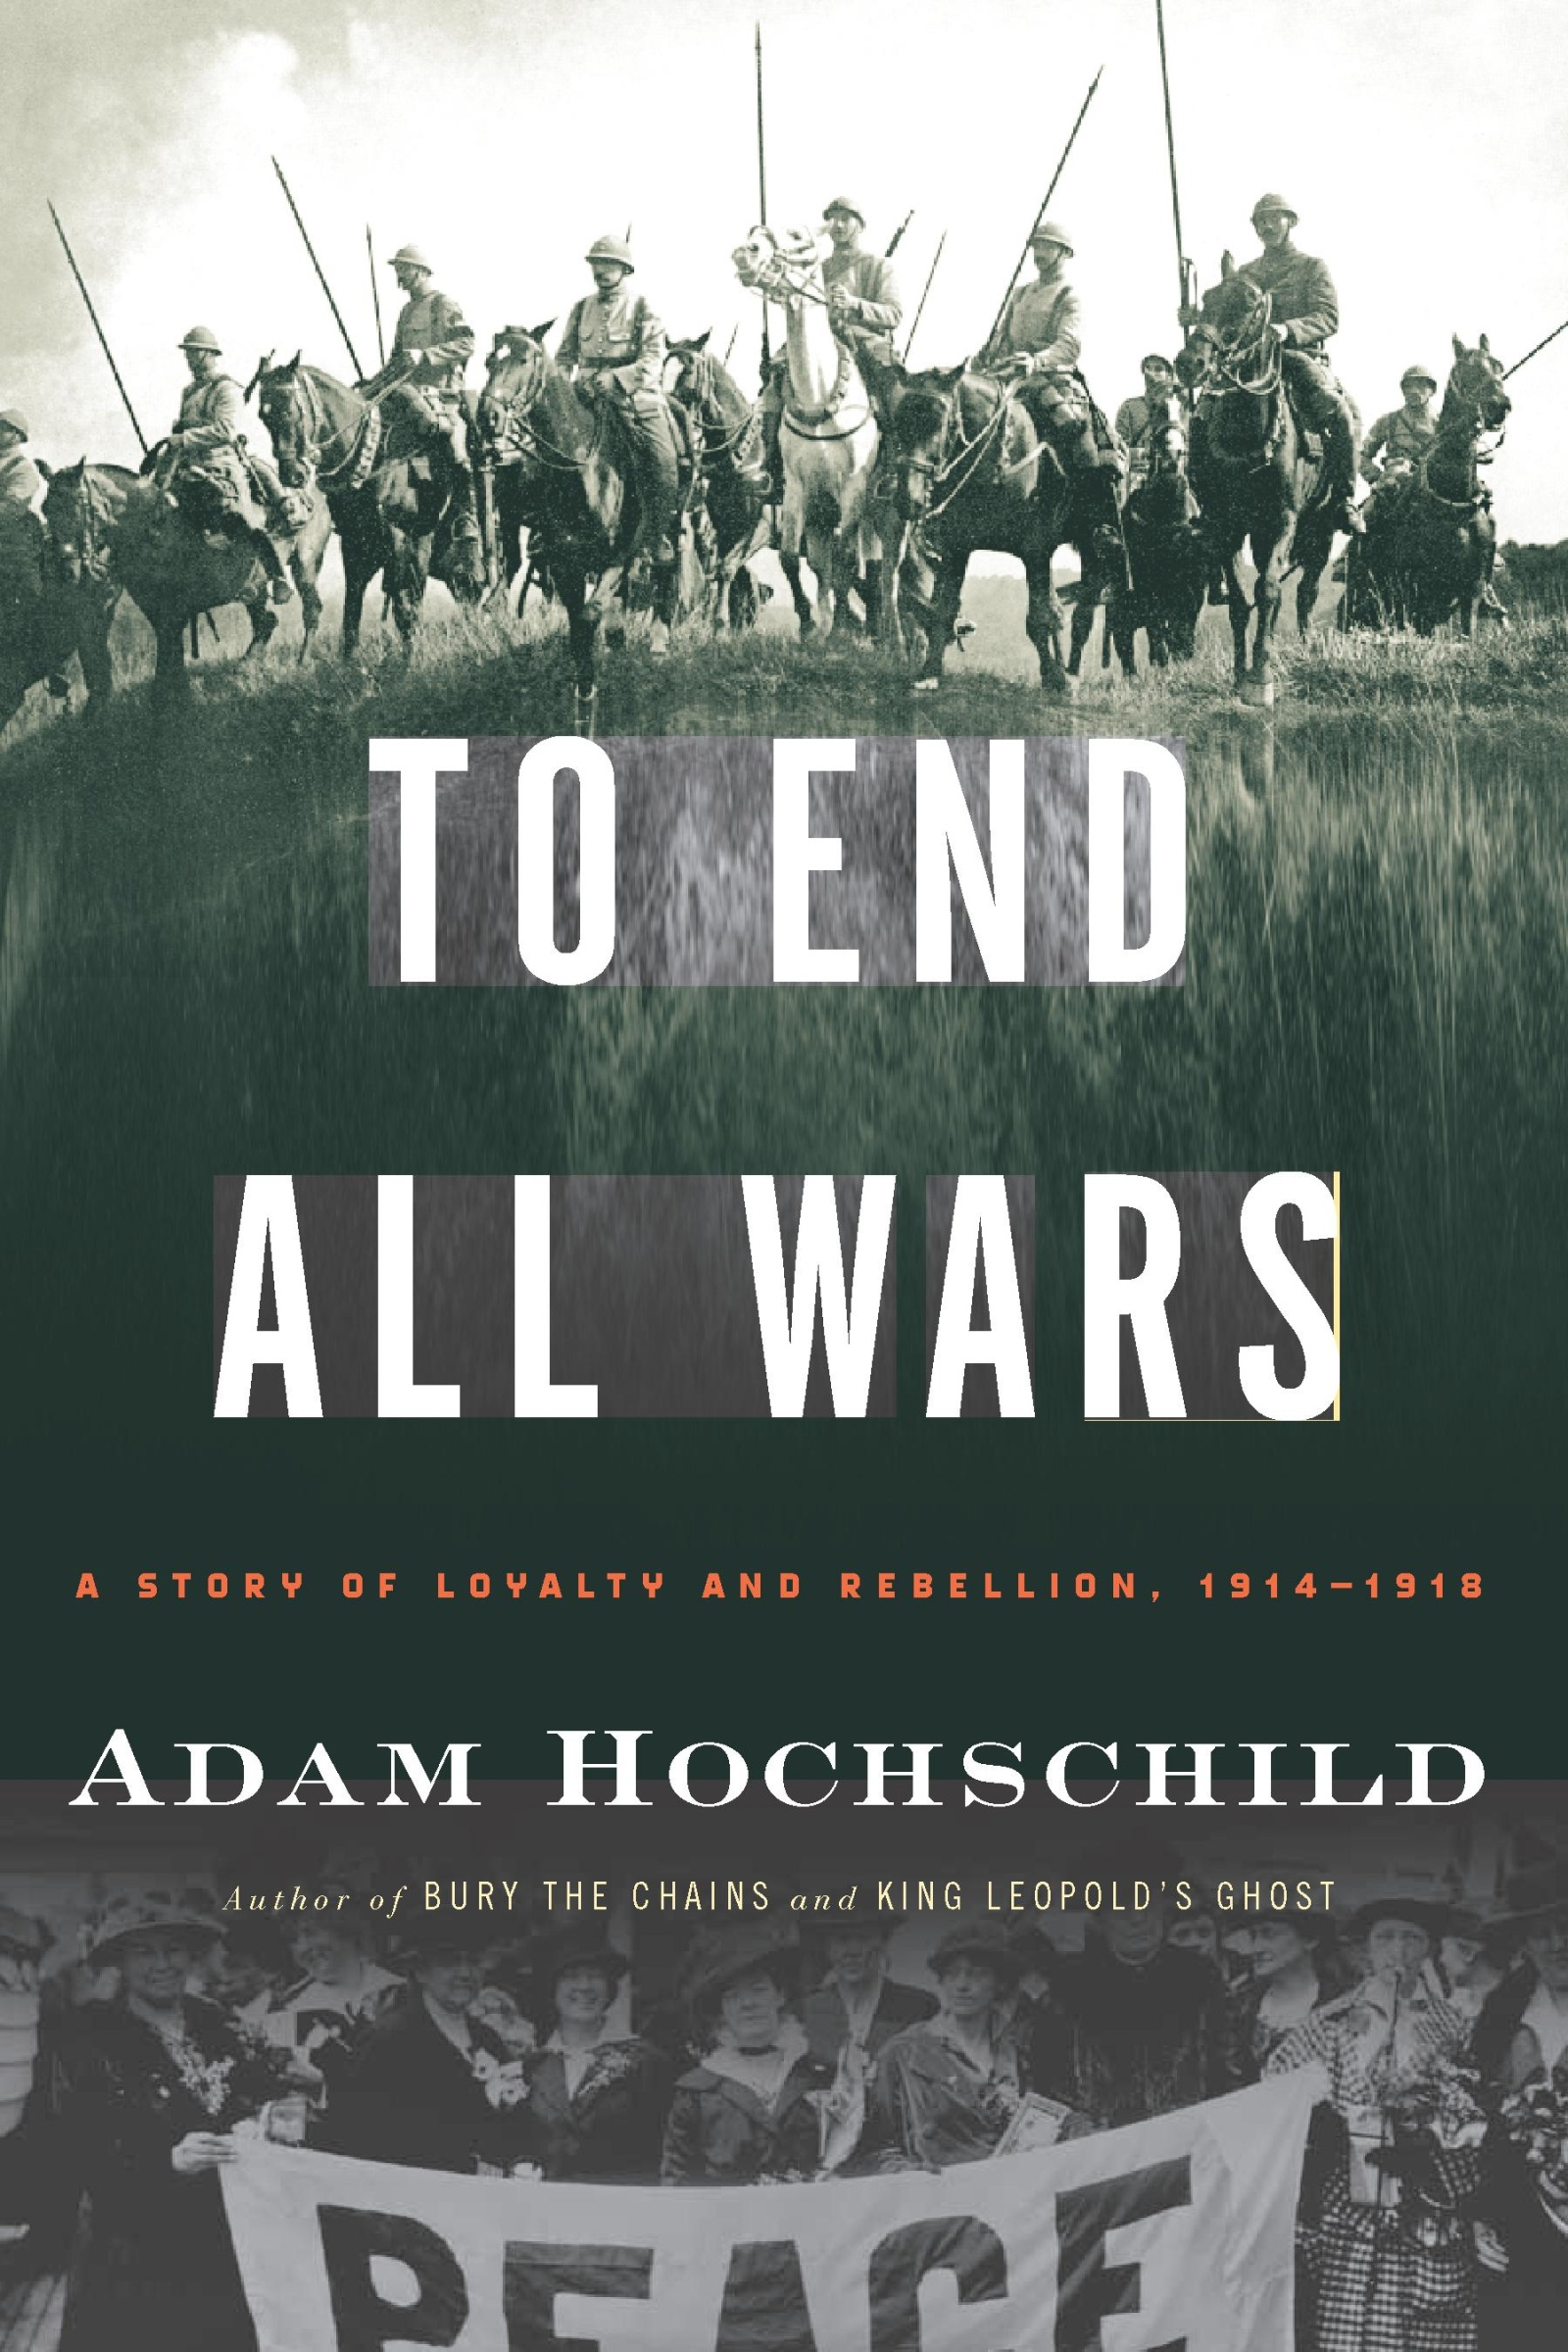 To End All Wars A Story of Loyalty and Rebellion, 1914-1918